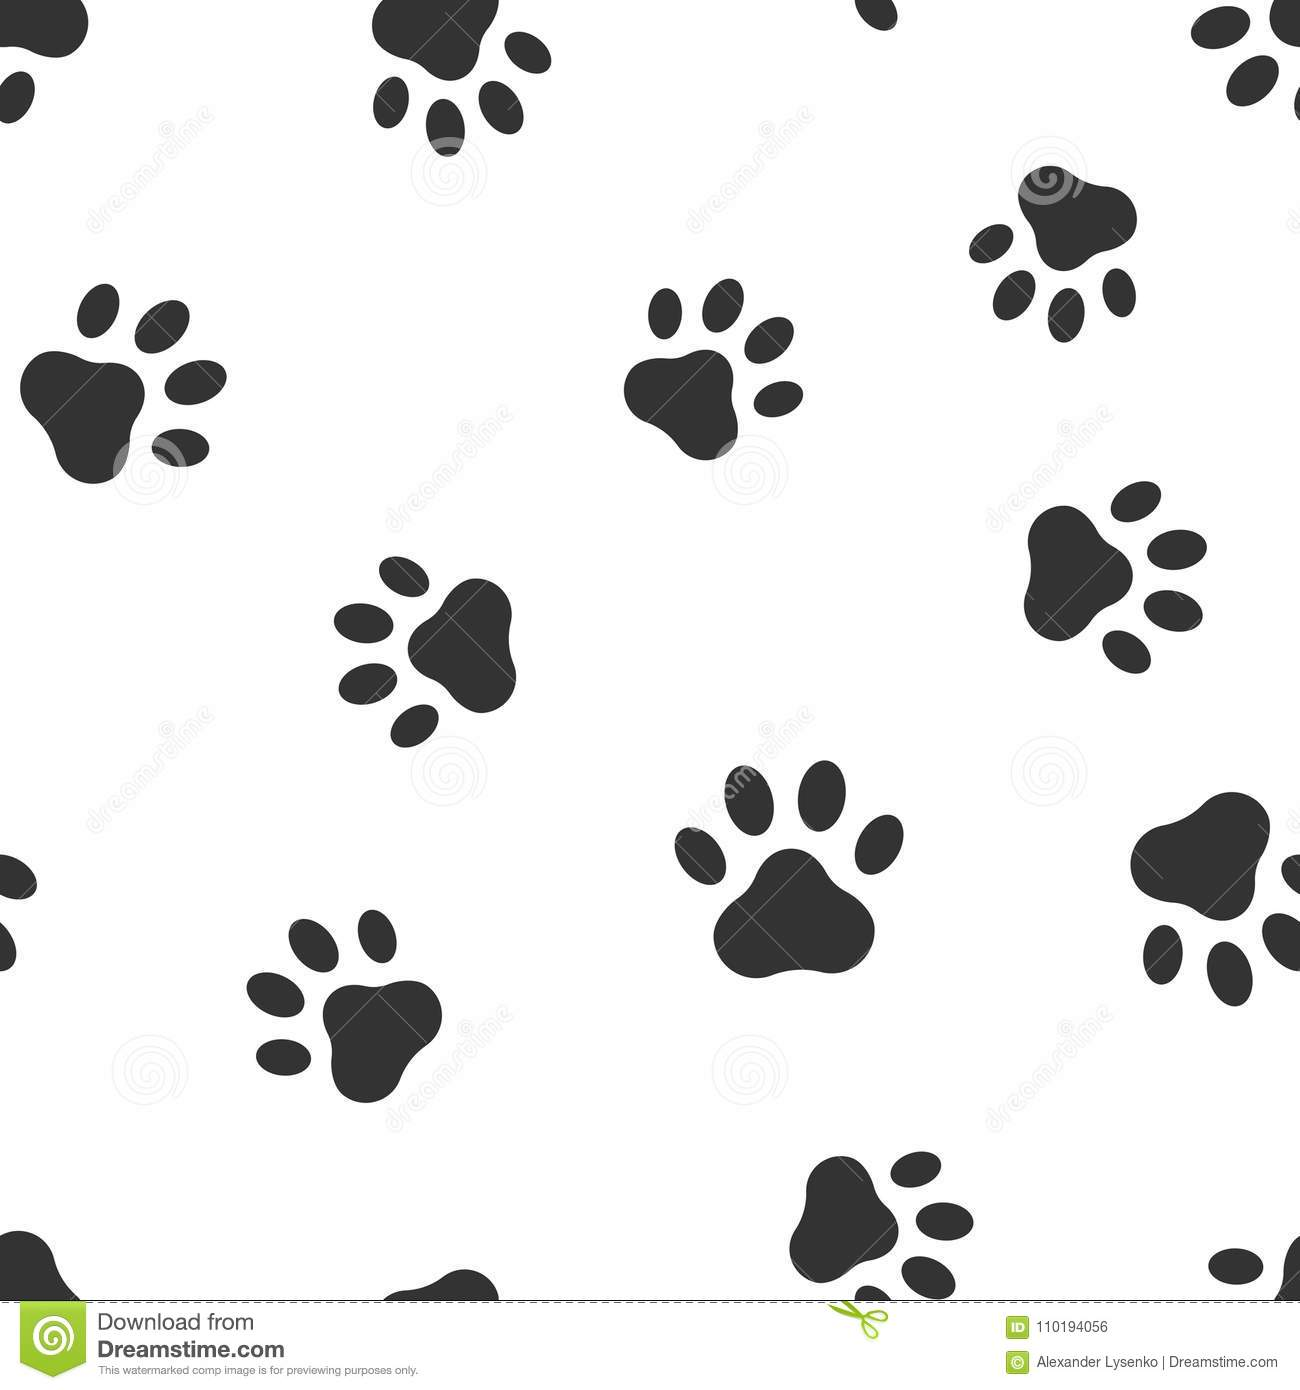 e418ff752a12 Paw print icon seamless pattern background. Business flat vector  illustration. Dog, cat, bear paw sign symbol pattern.